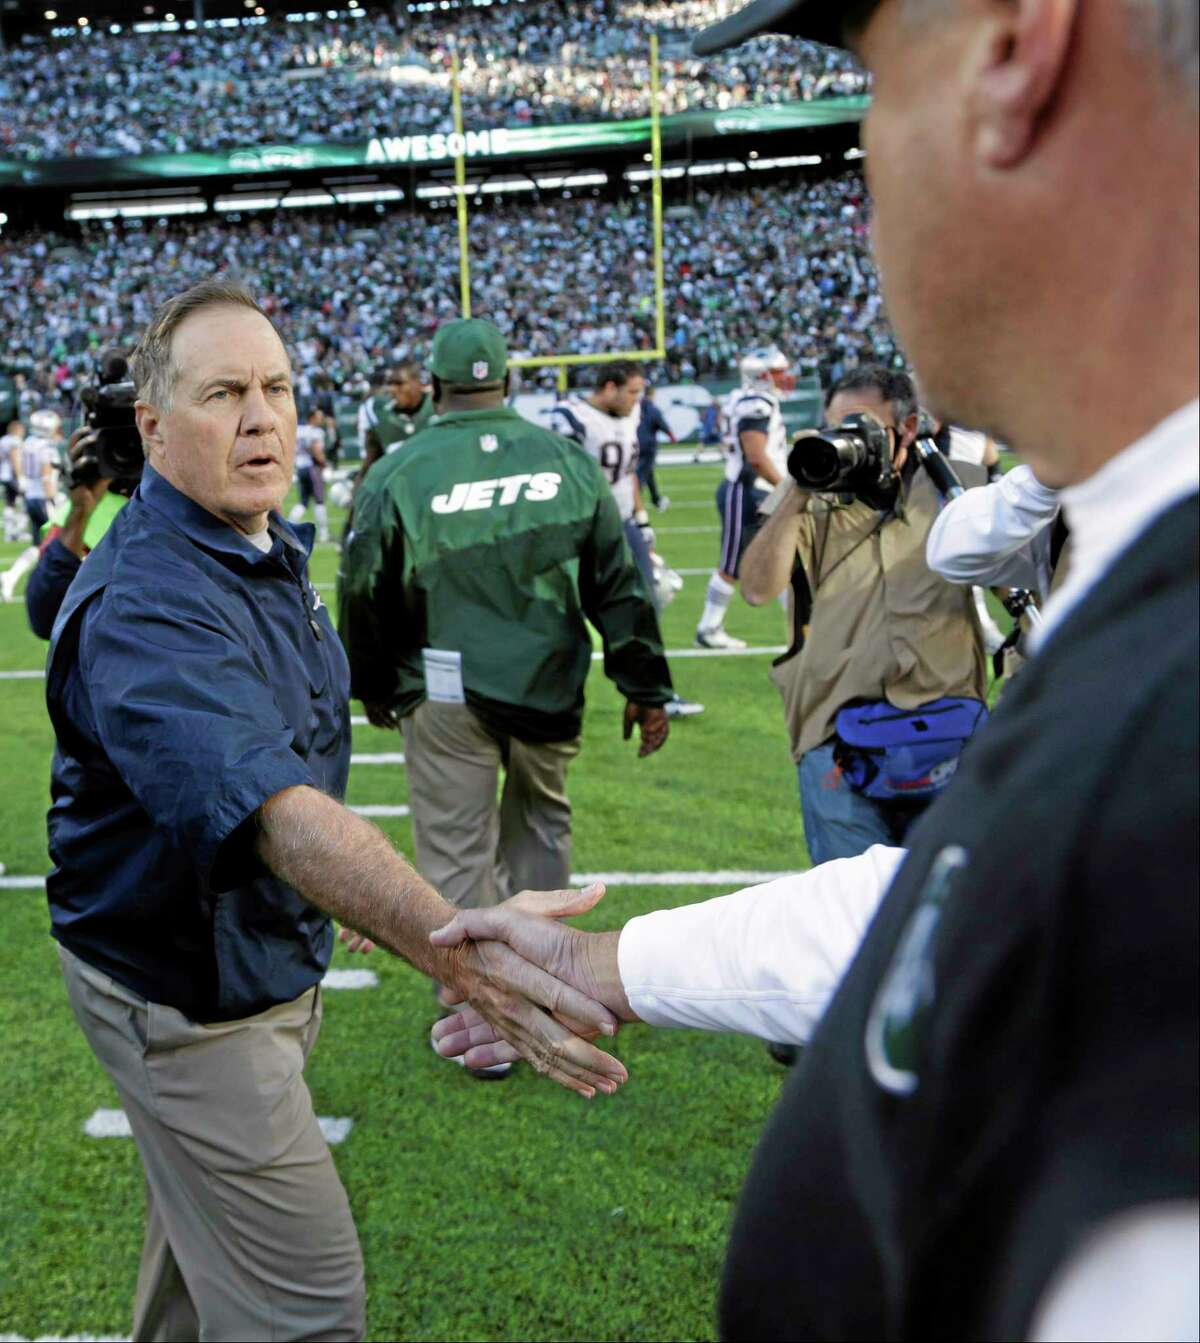 New England Patriots head coach Bill Belichick shakes hands with New York Jets head coach Rex Ryan after Sunday's game in East Rutherford, N.J. The Jets won the game 30-27.